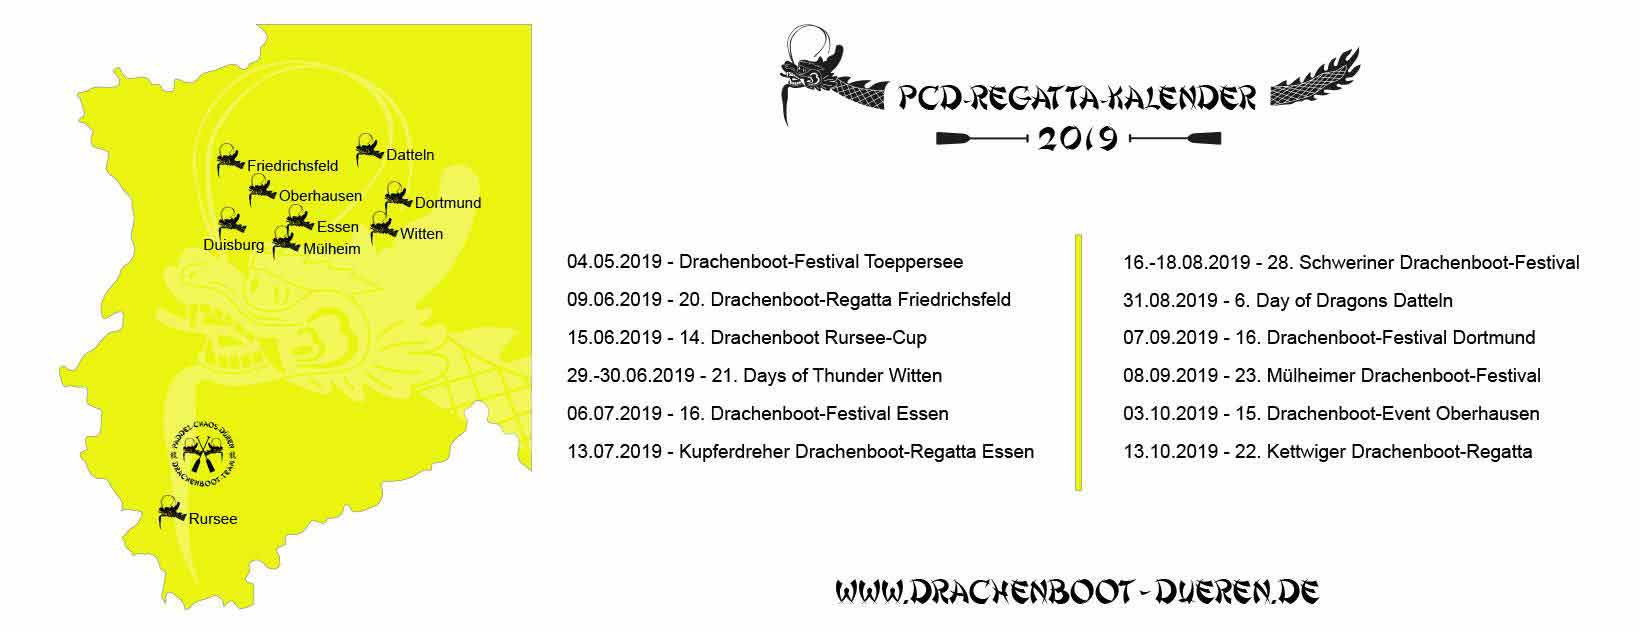 PCD Drachenboot Events 2019